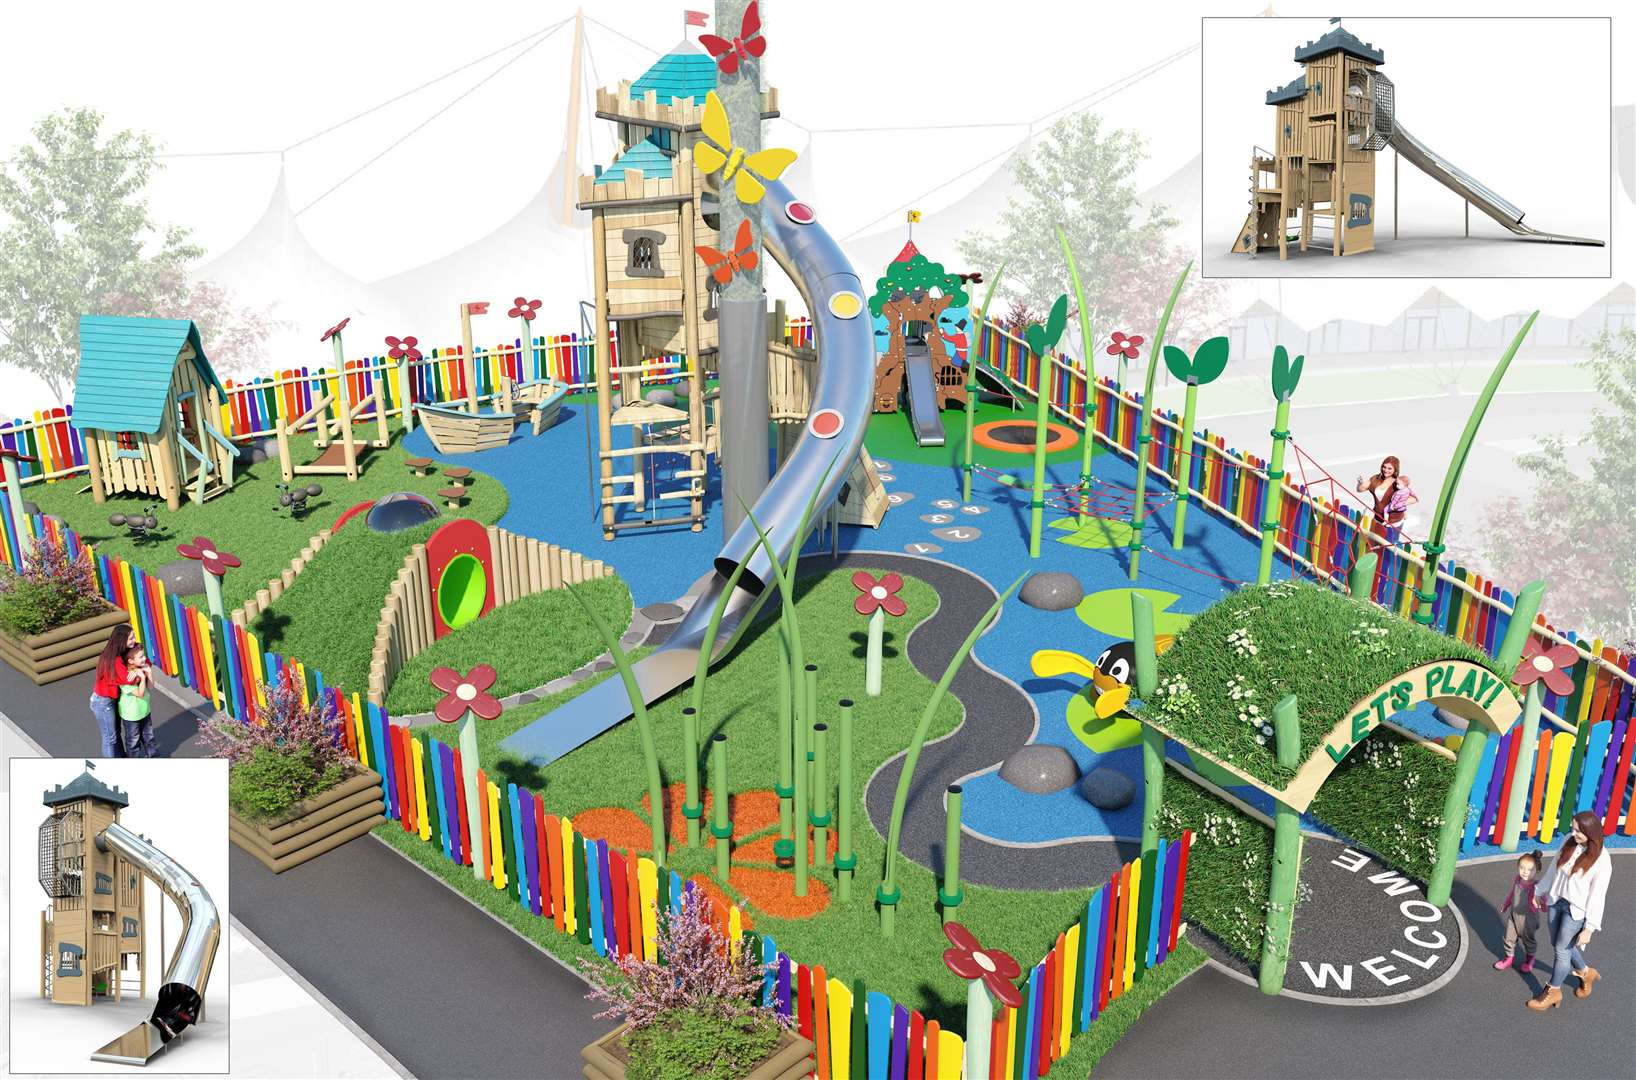 How the playground will look